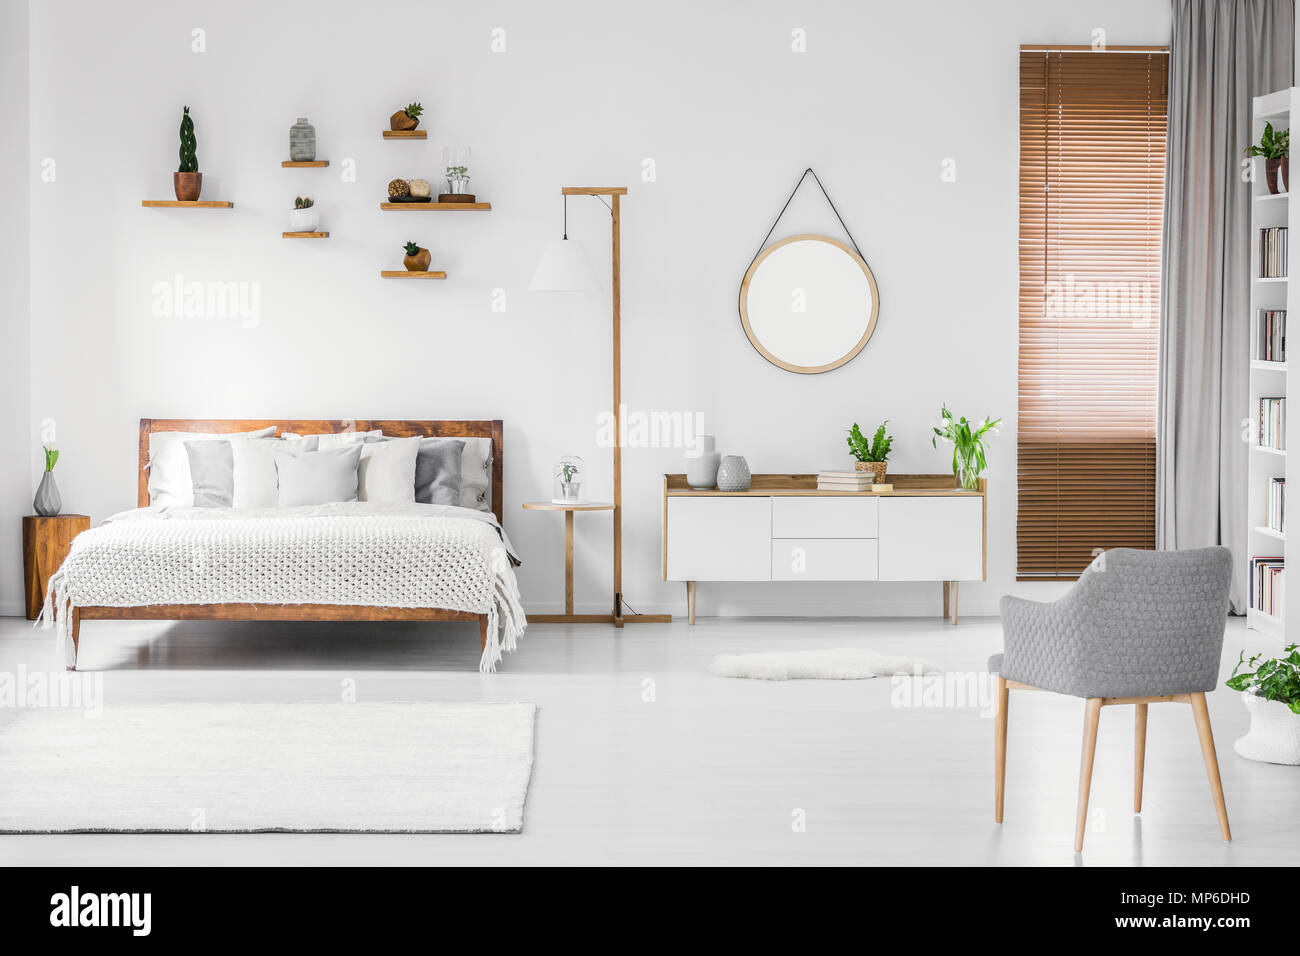 Spacious Designer White Bedroom Interior With Wooden Bed With Bedding And Pillows Night Table Small Shelves Above And Modern Armchair On The Right Stock Photo Alamy